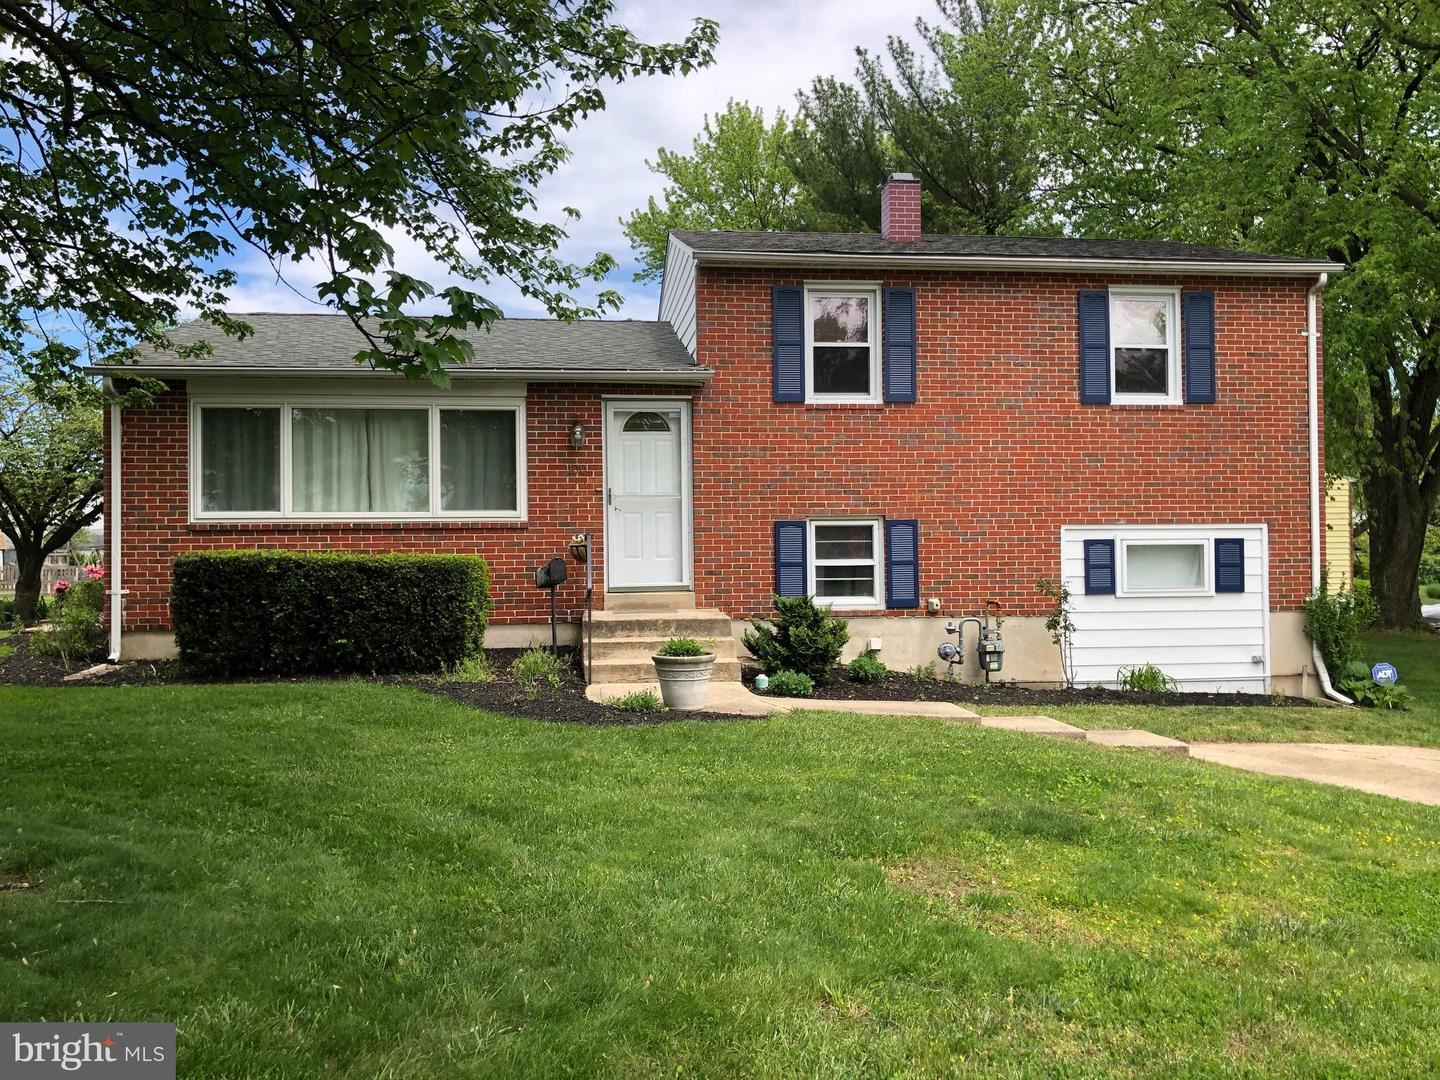 100 MARGATE RD, Lutherville Timonium, MD 21093 - MLS#: MDBC528540